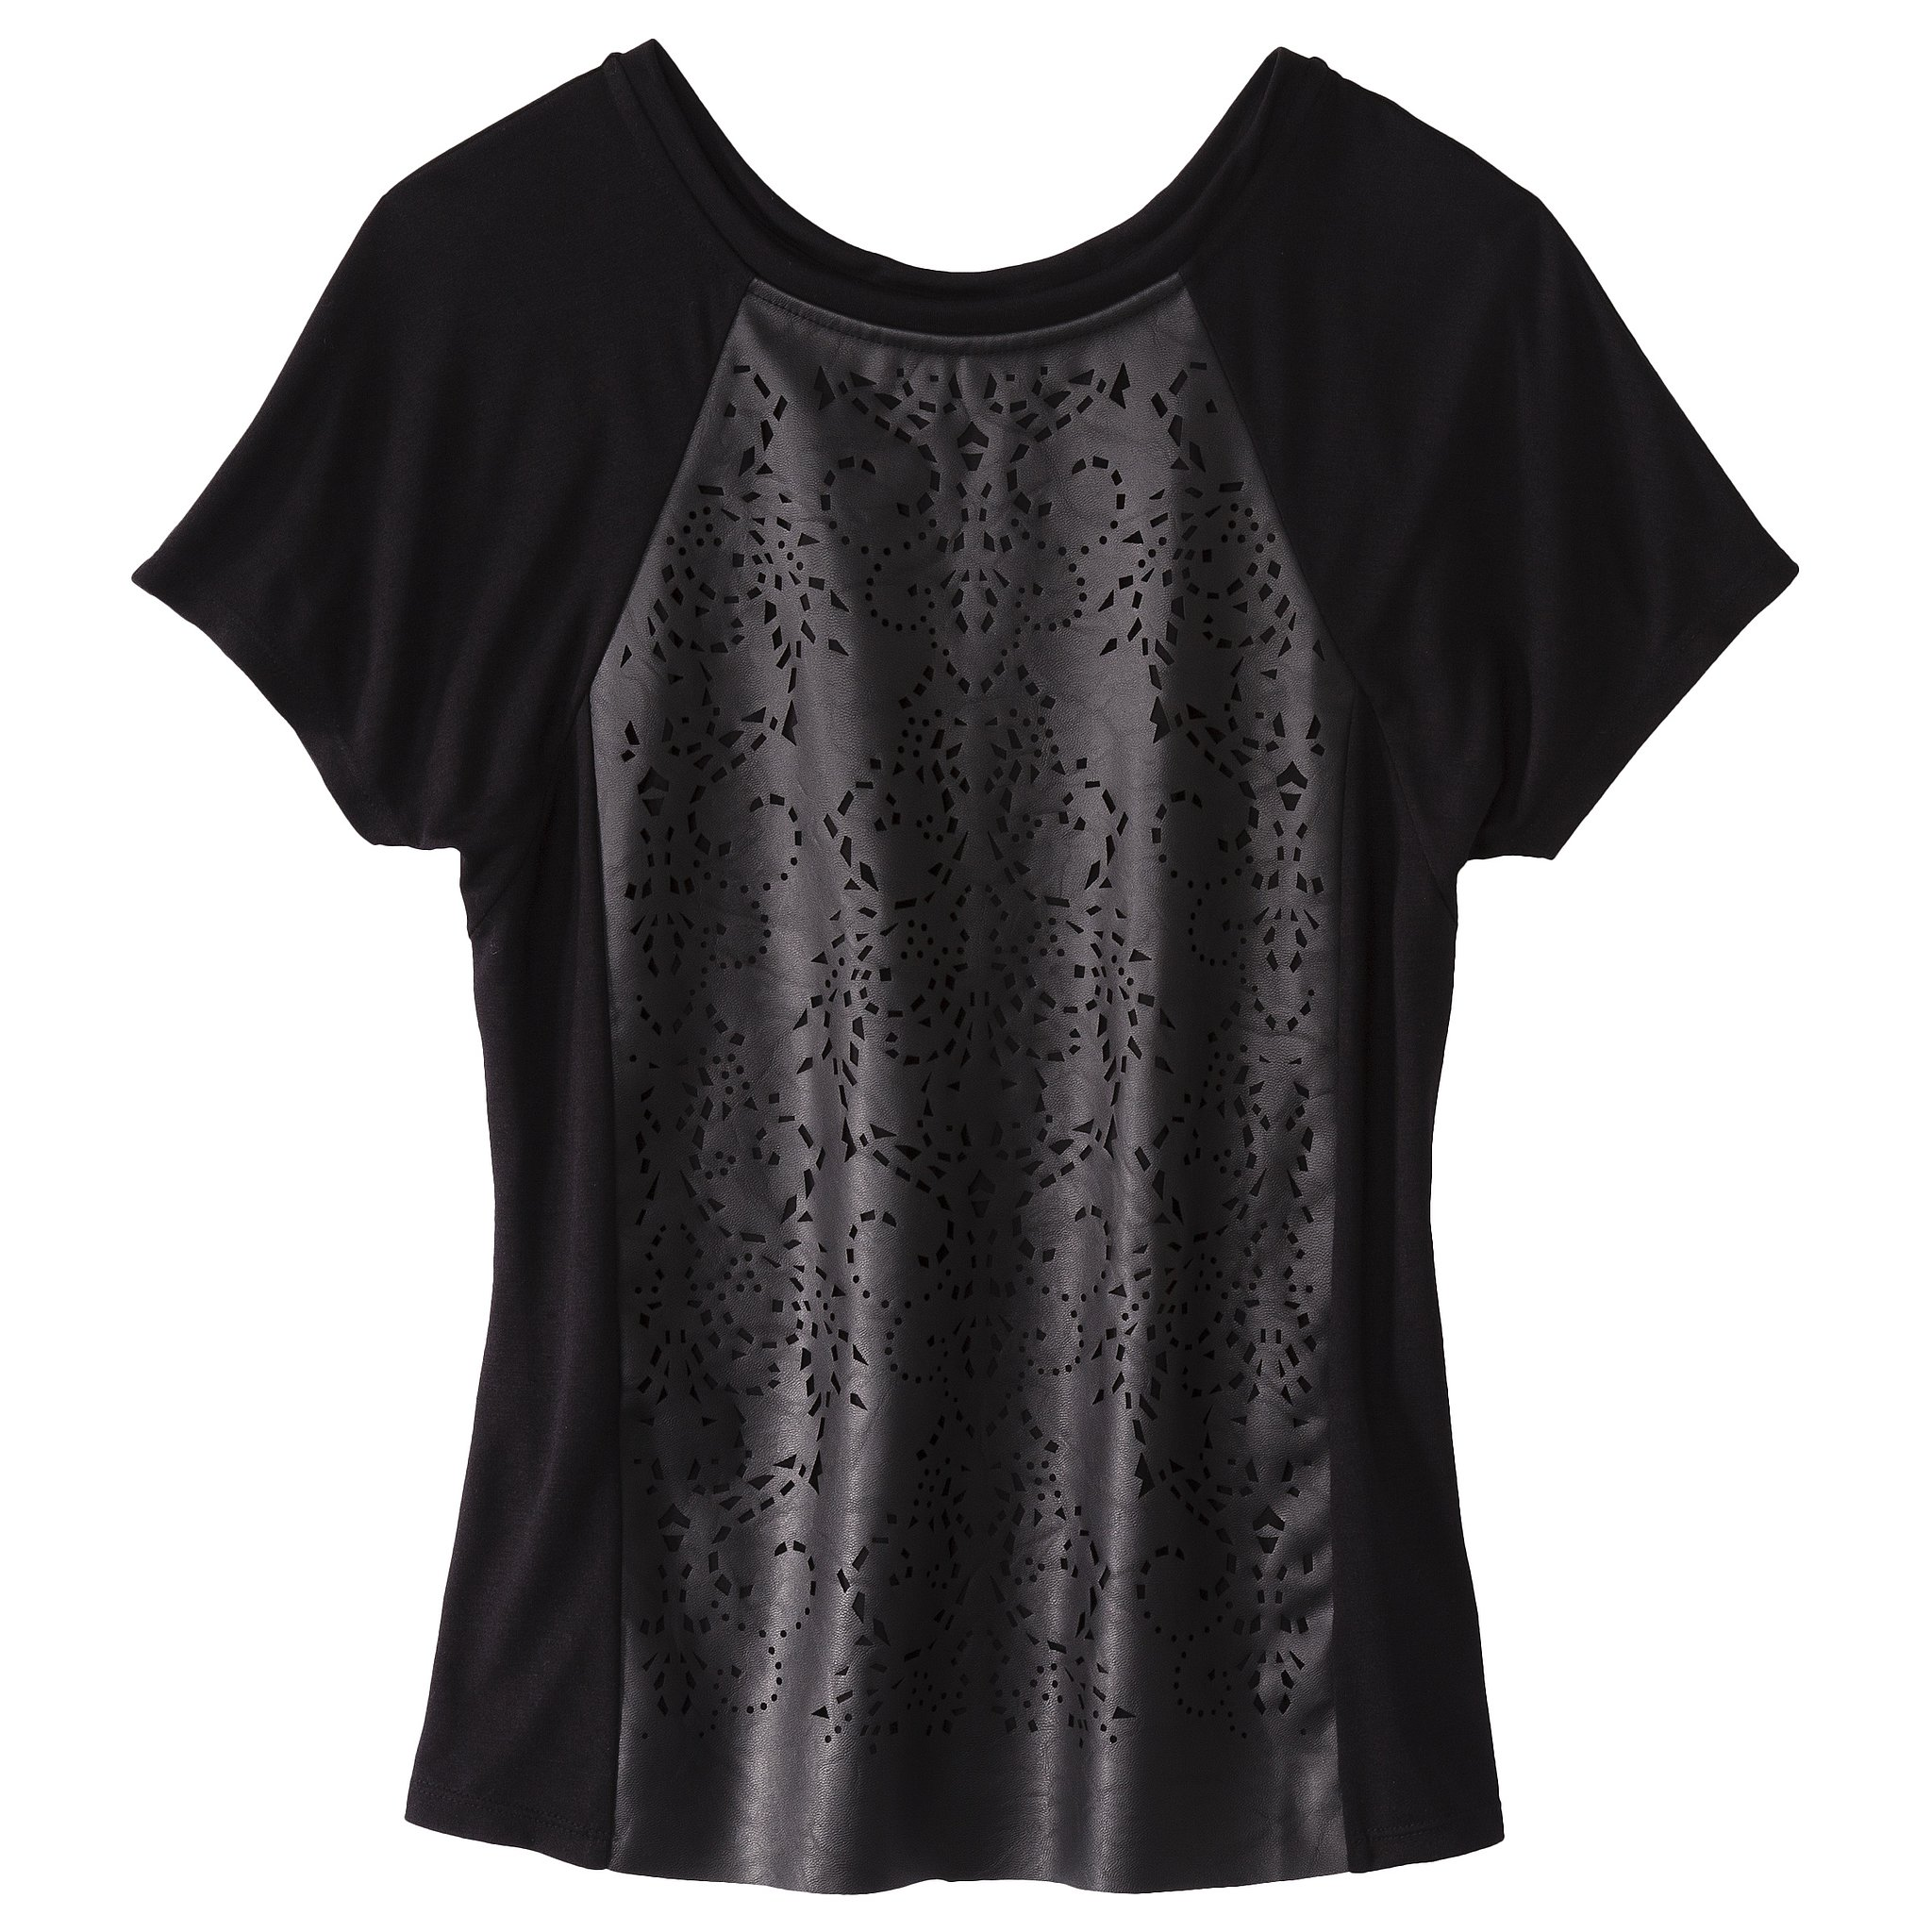 The laser-cut front on this Mossimo find ($25) makes it undeniably cooler than your average tee.